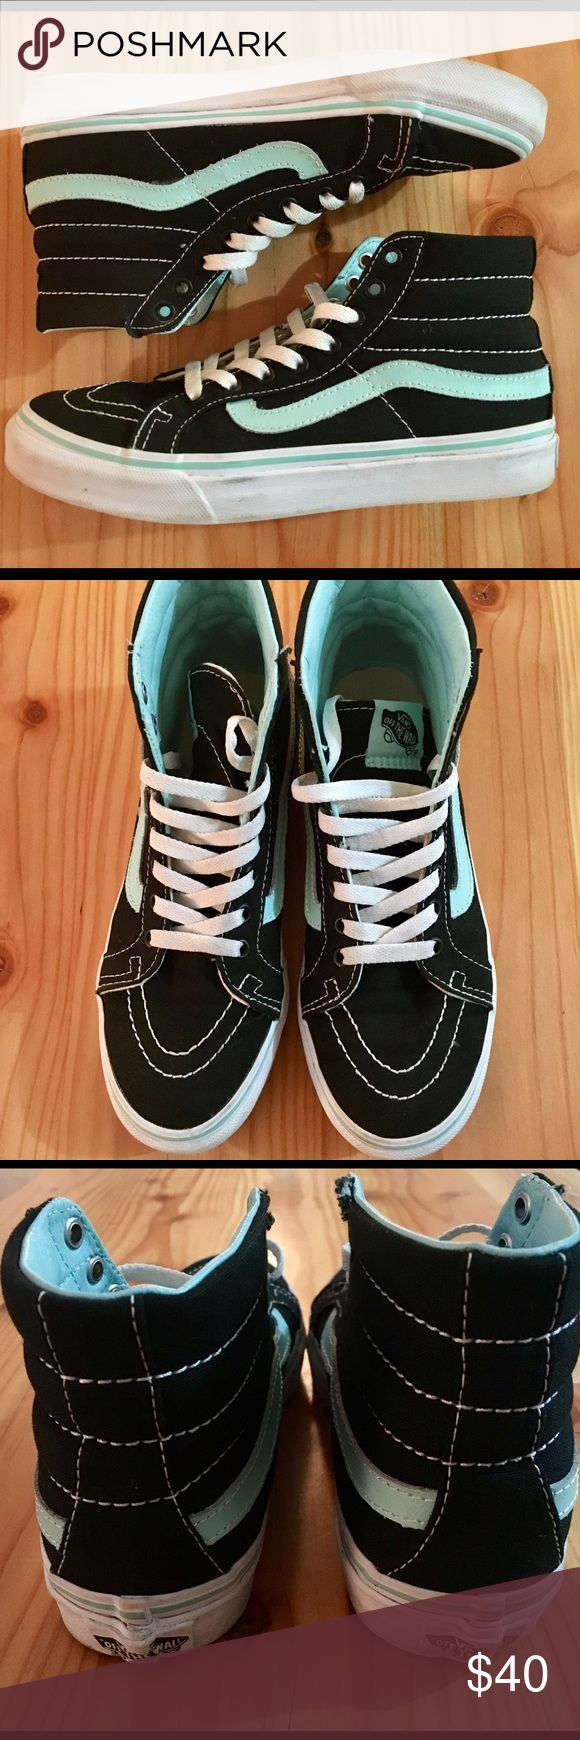 Vans Sk8 Hi Vans Sk8 Hi size men's 4.5, women's 6. They're black with a white sole and seafoam green 👗 stripe and inside. These have only been worn once, so they are pretty much brand new. The only reason I'm listing these is they're a tiny bit too small for me. Looking to trade for a women's 6.5 Sk8 hi shoe in similar condition as well! Vans Shoes Sneakers